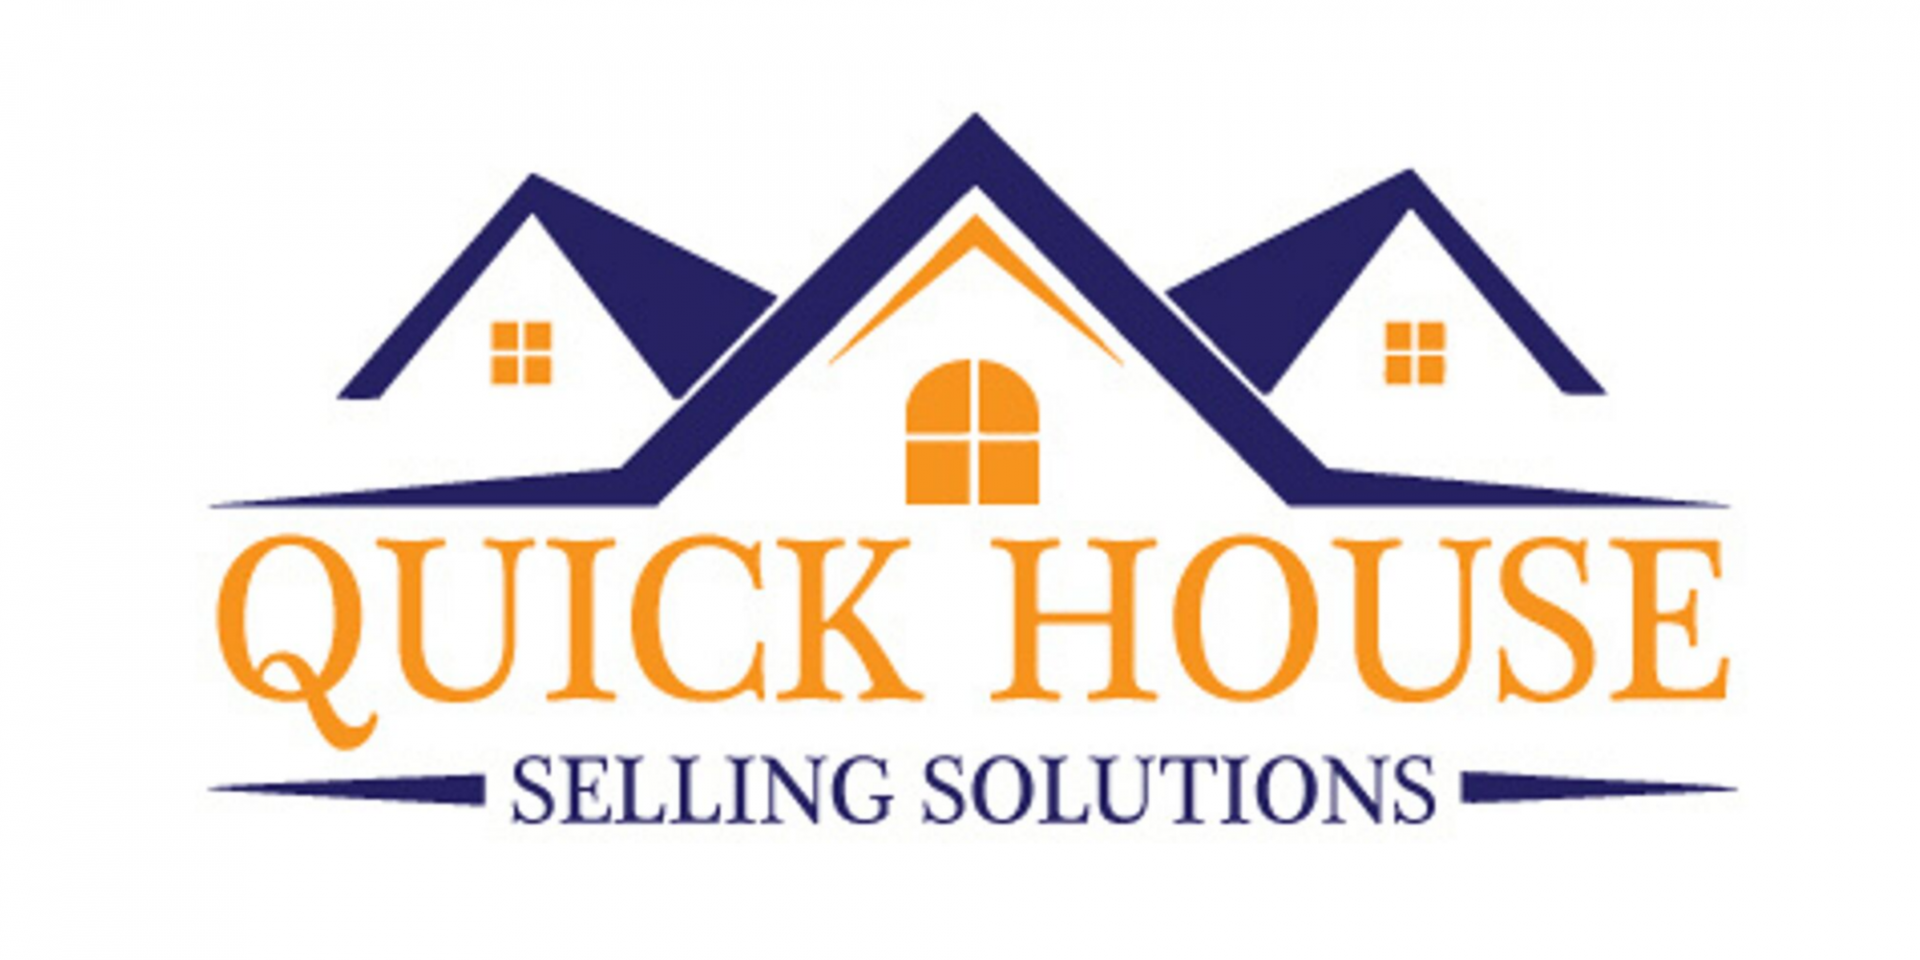 Quick House Selling Solutions logo